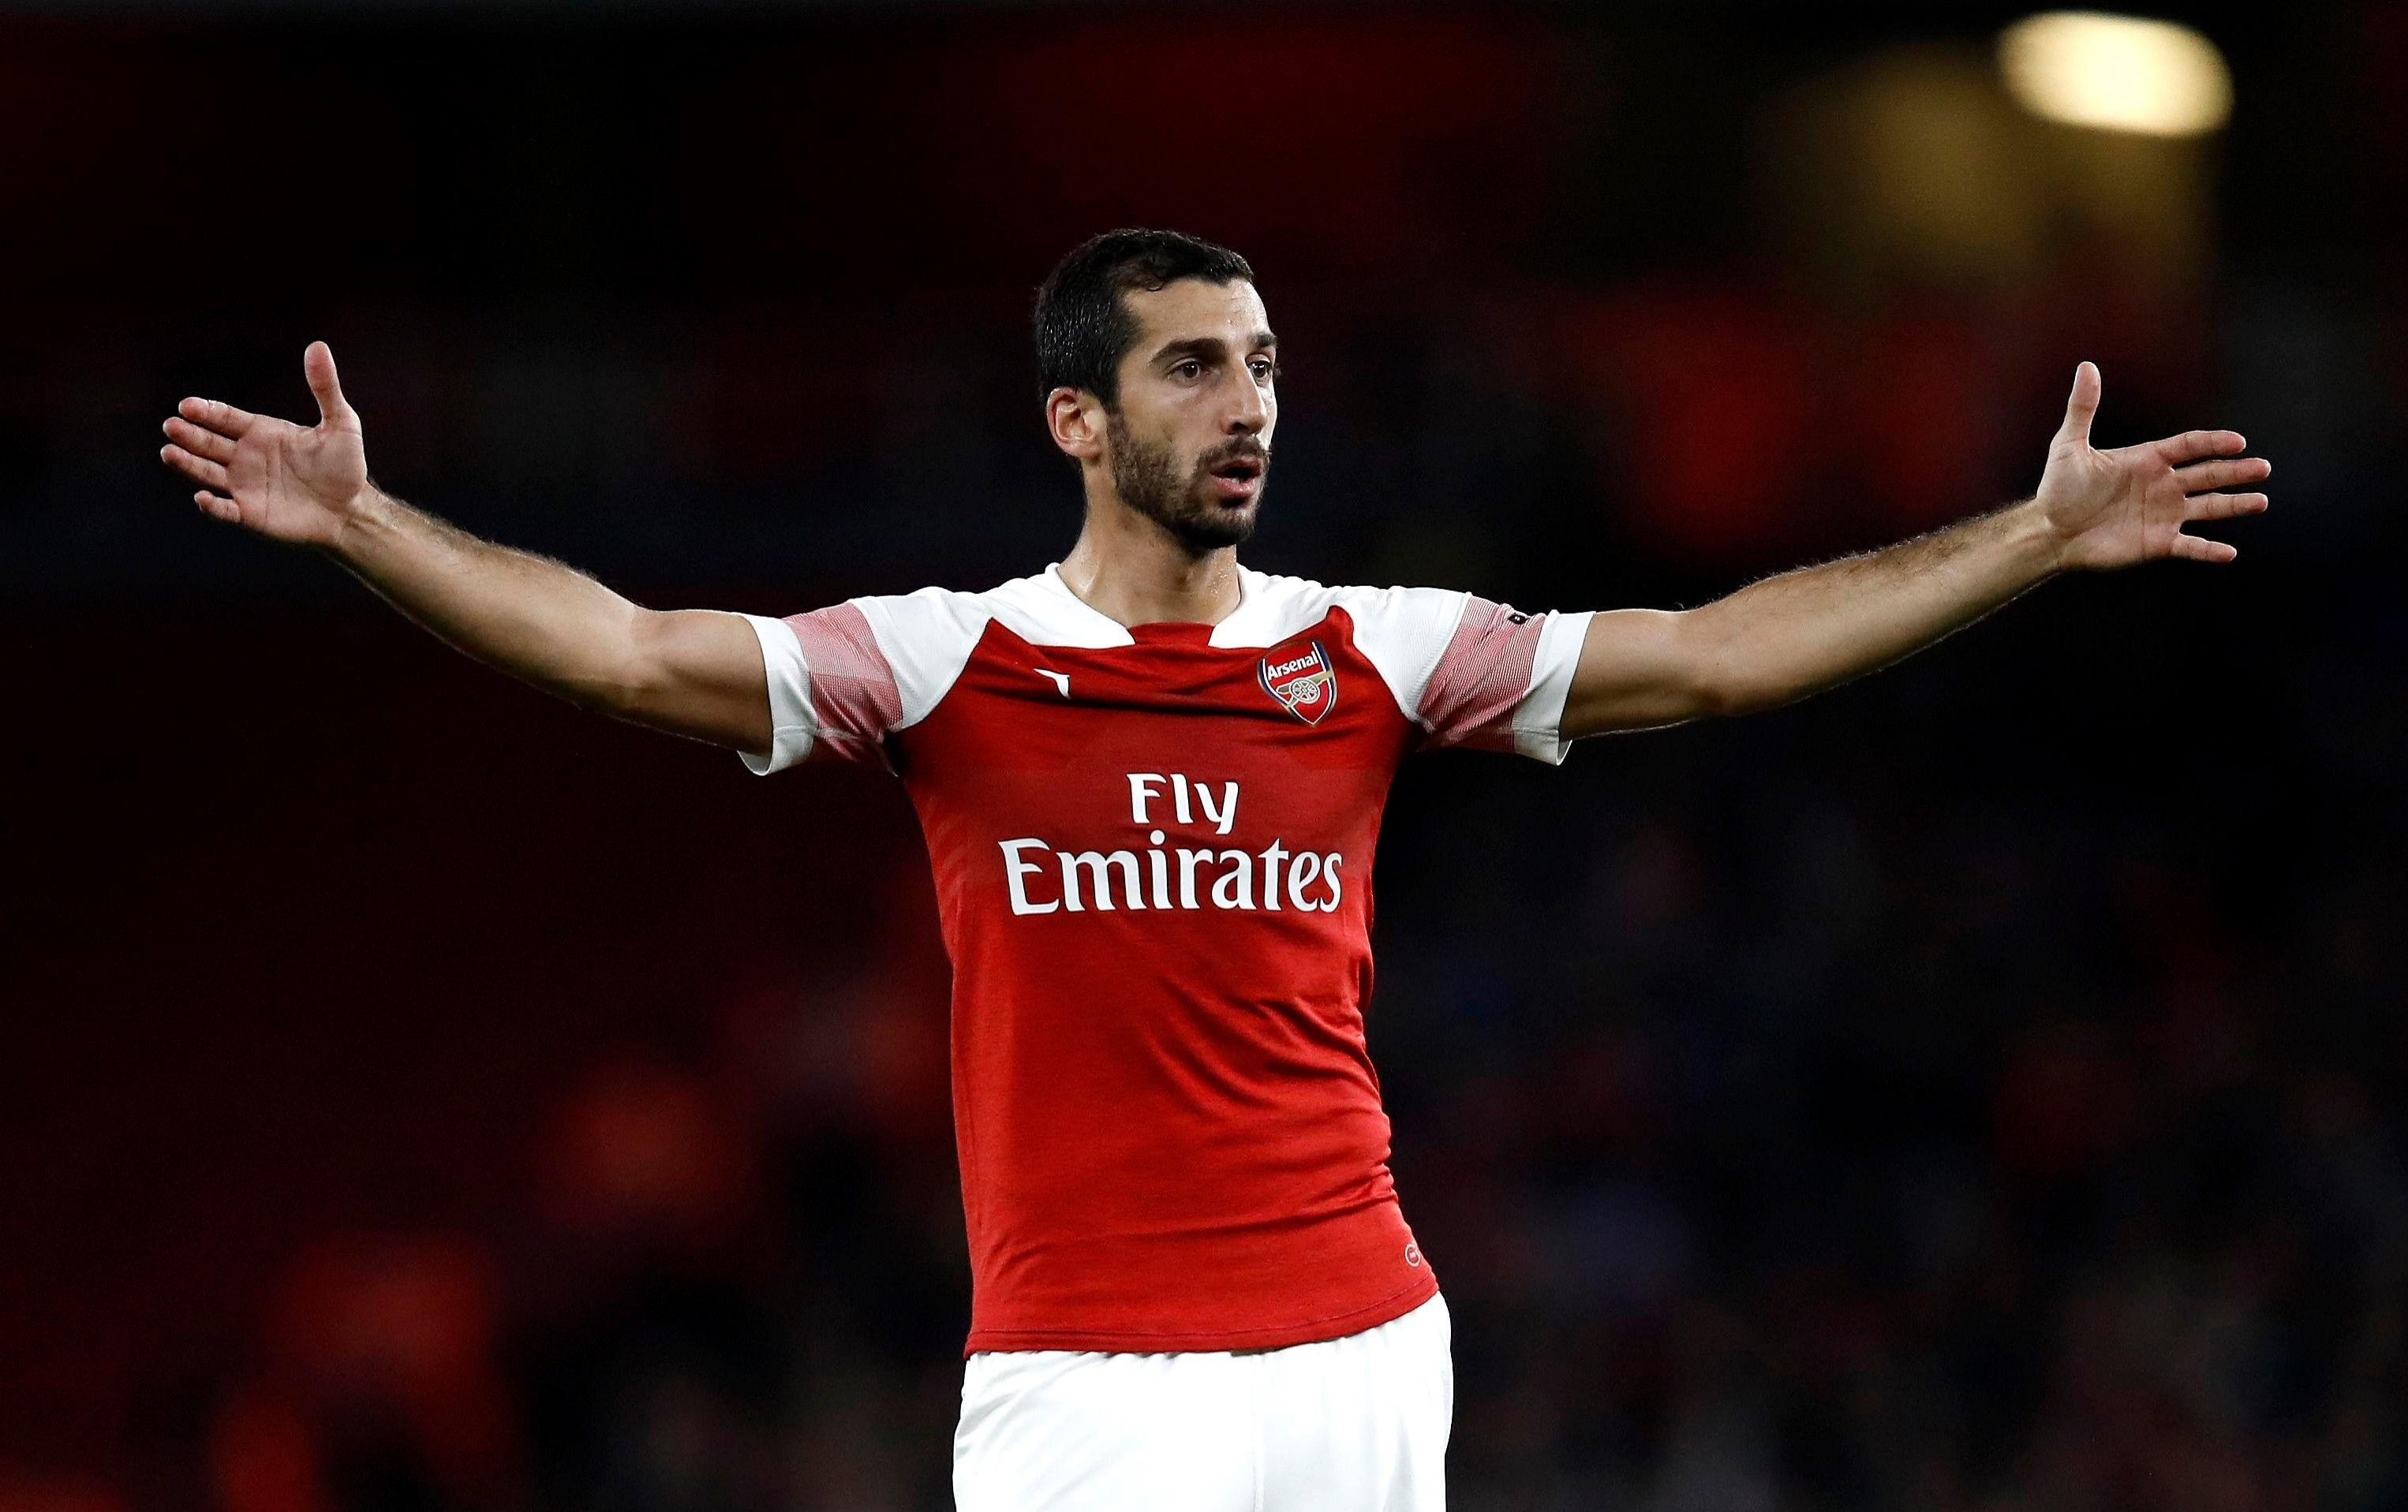 Henrikh Mkhitaryan will not travel to Azerbaijan when his team face Qarabag